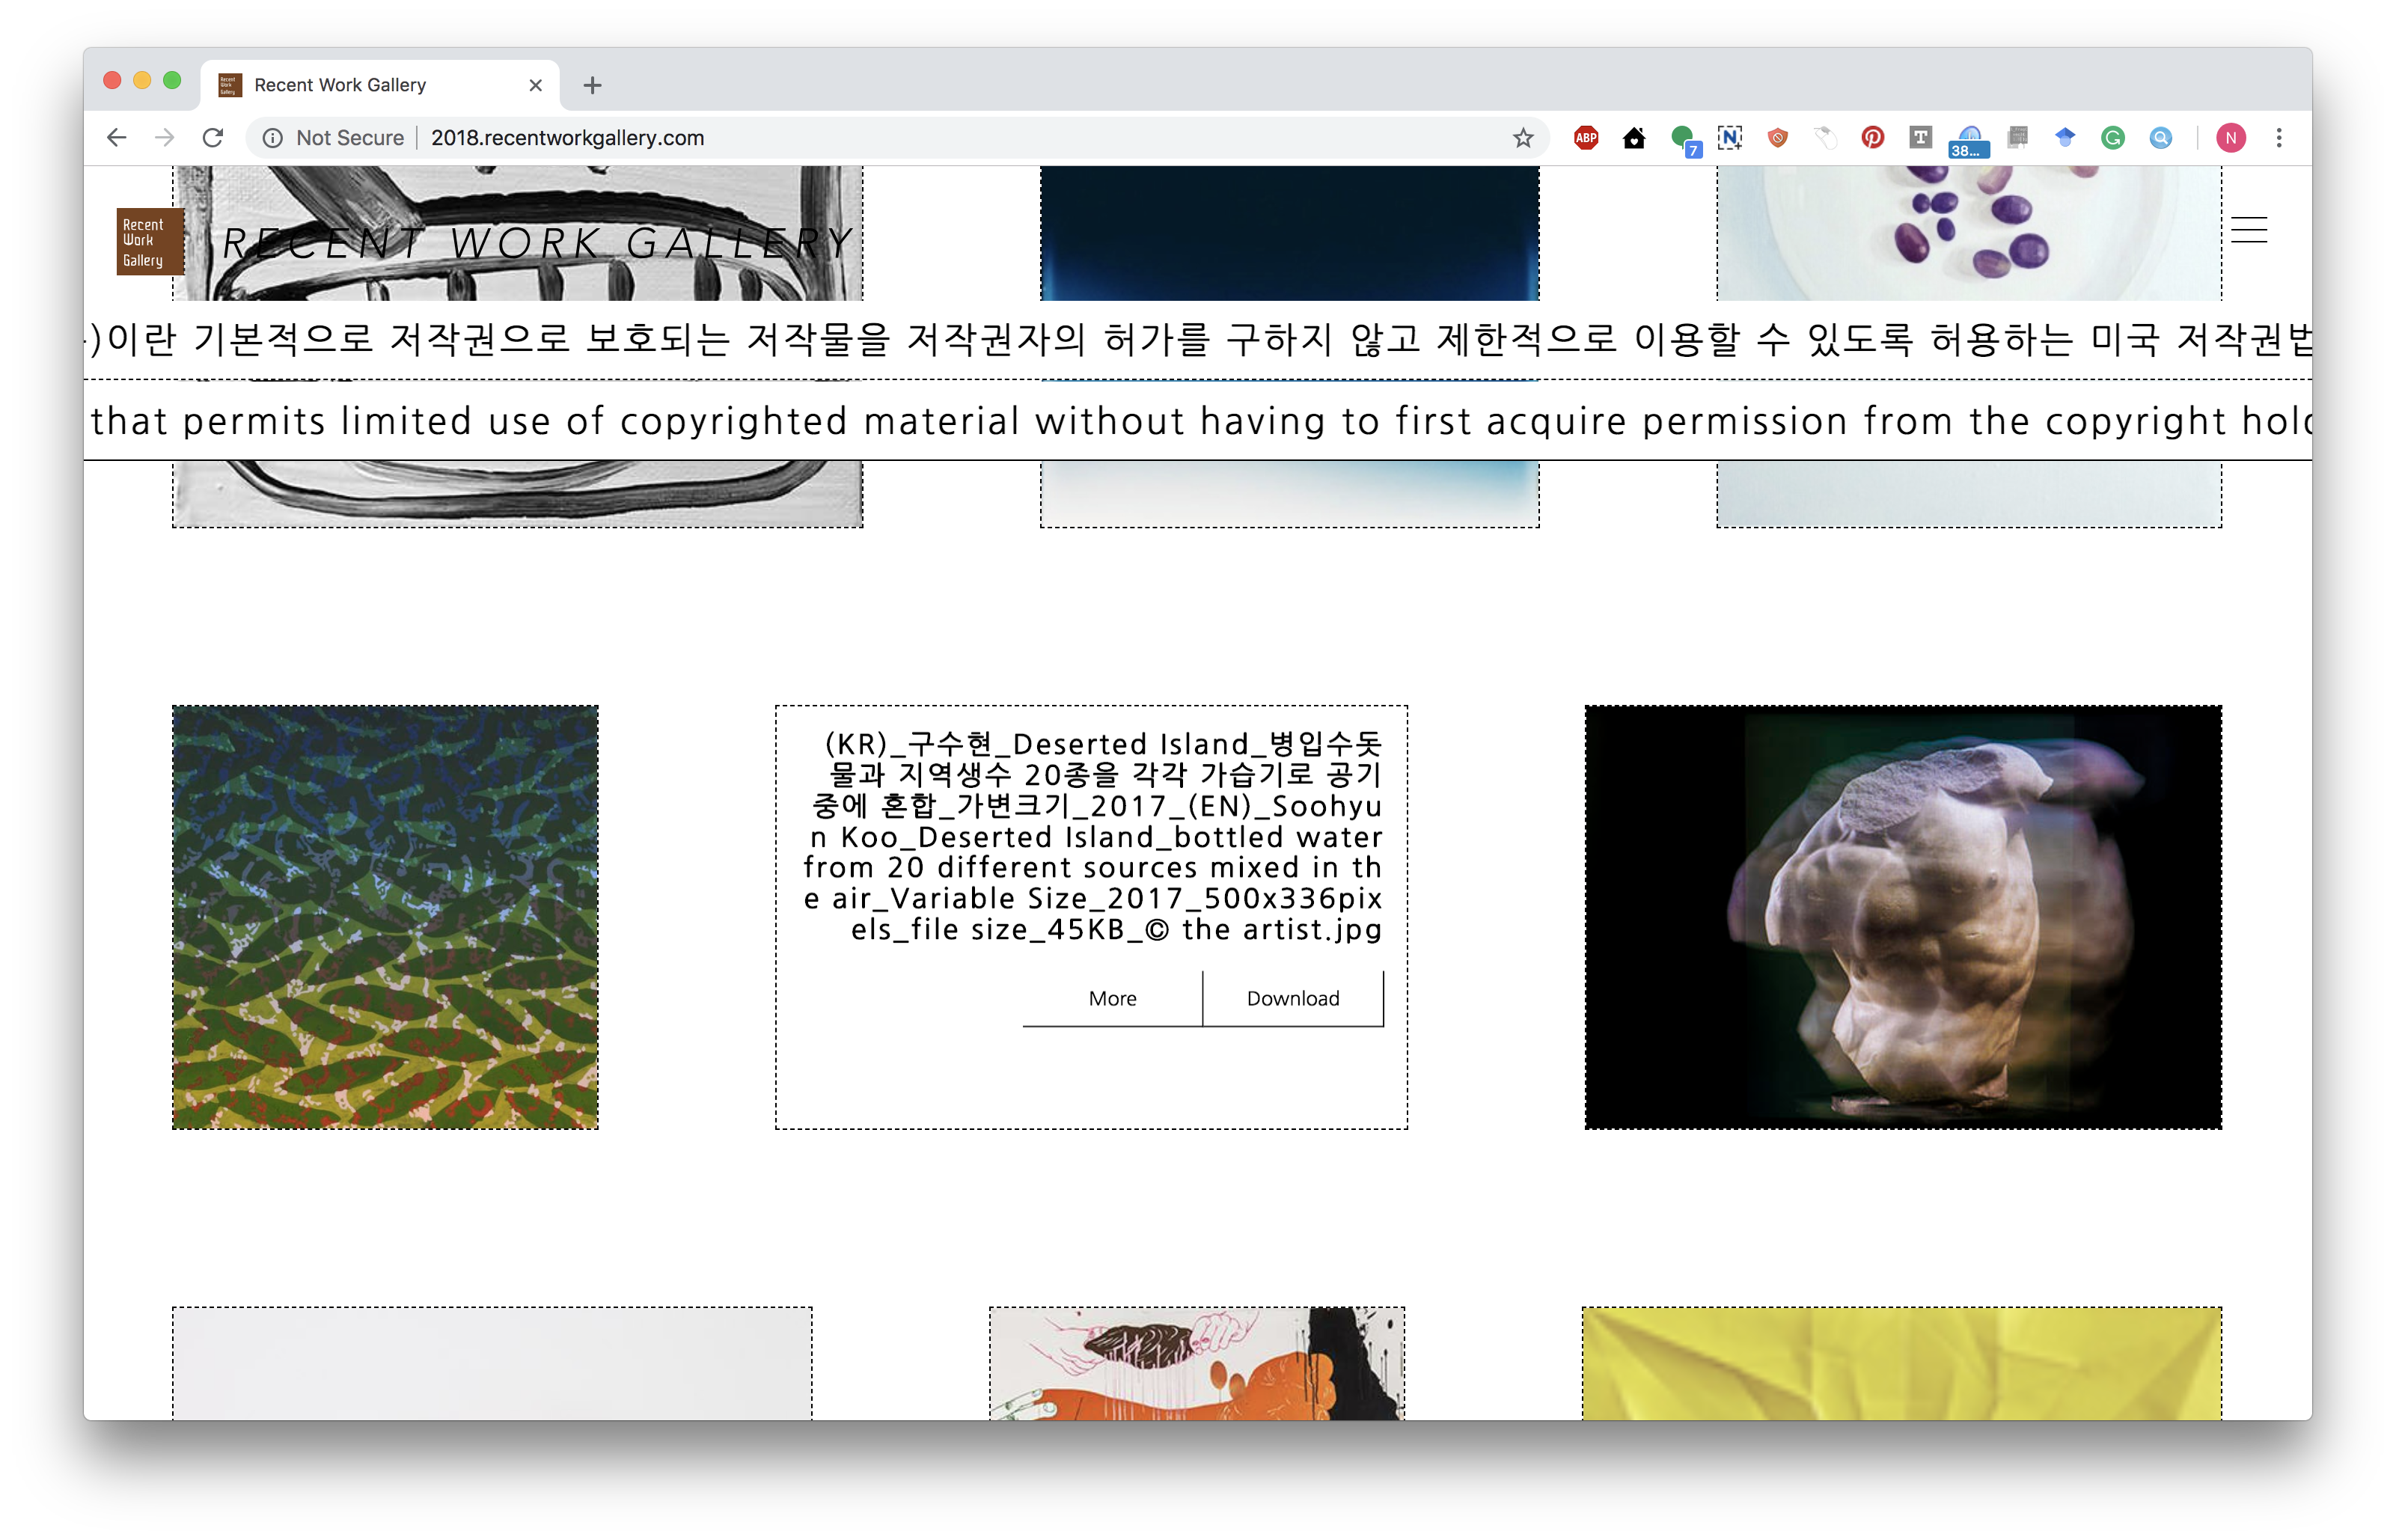 i designed and developed this web page for recent work gallery 2018 project using react js for frontend and node js for backend development